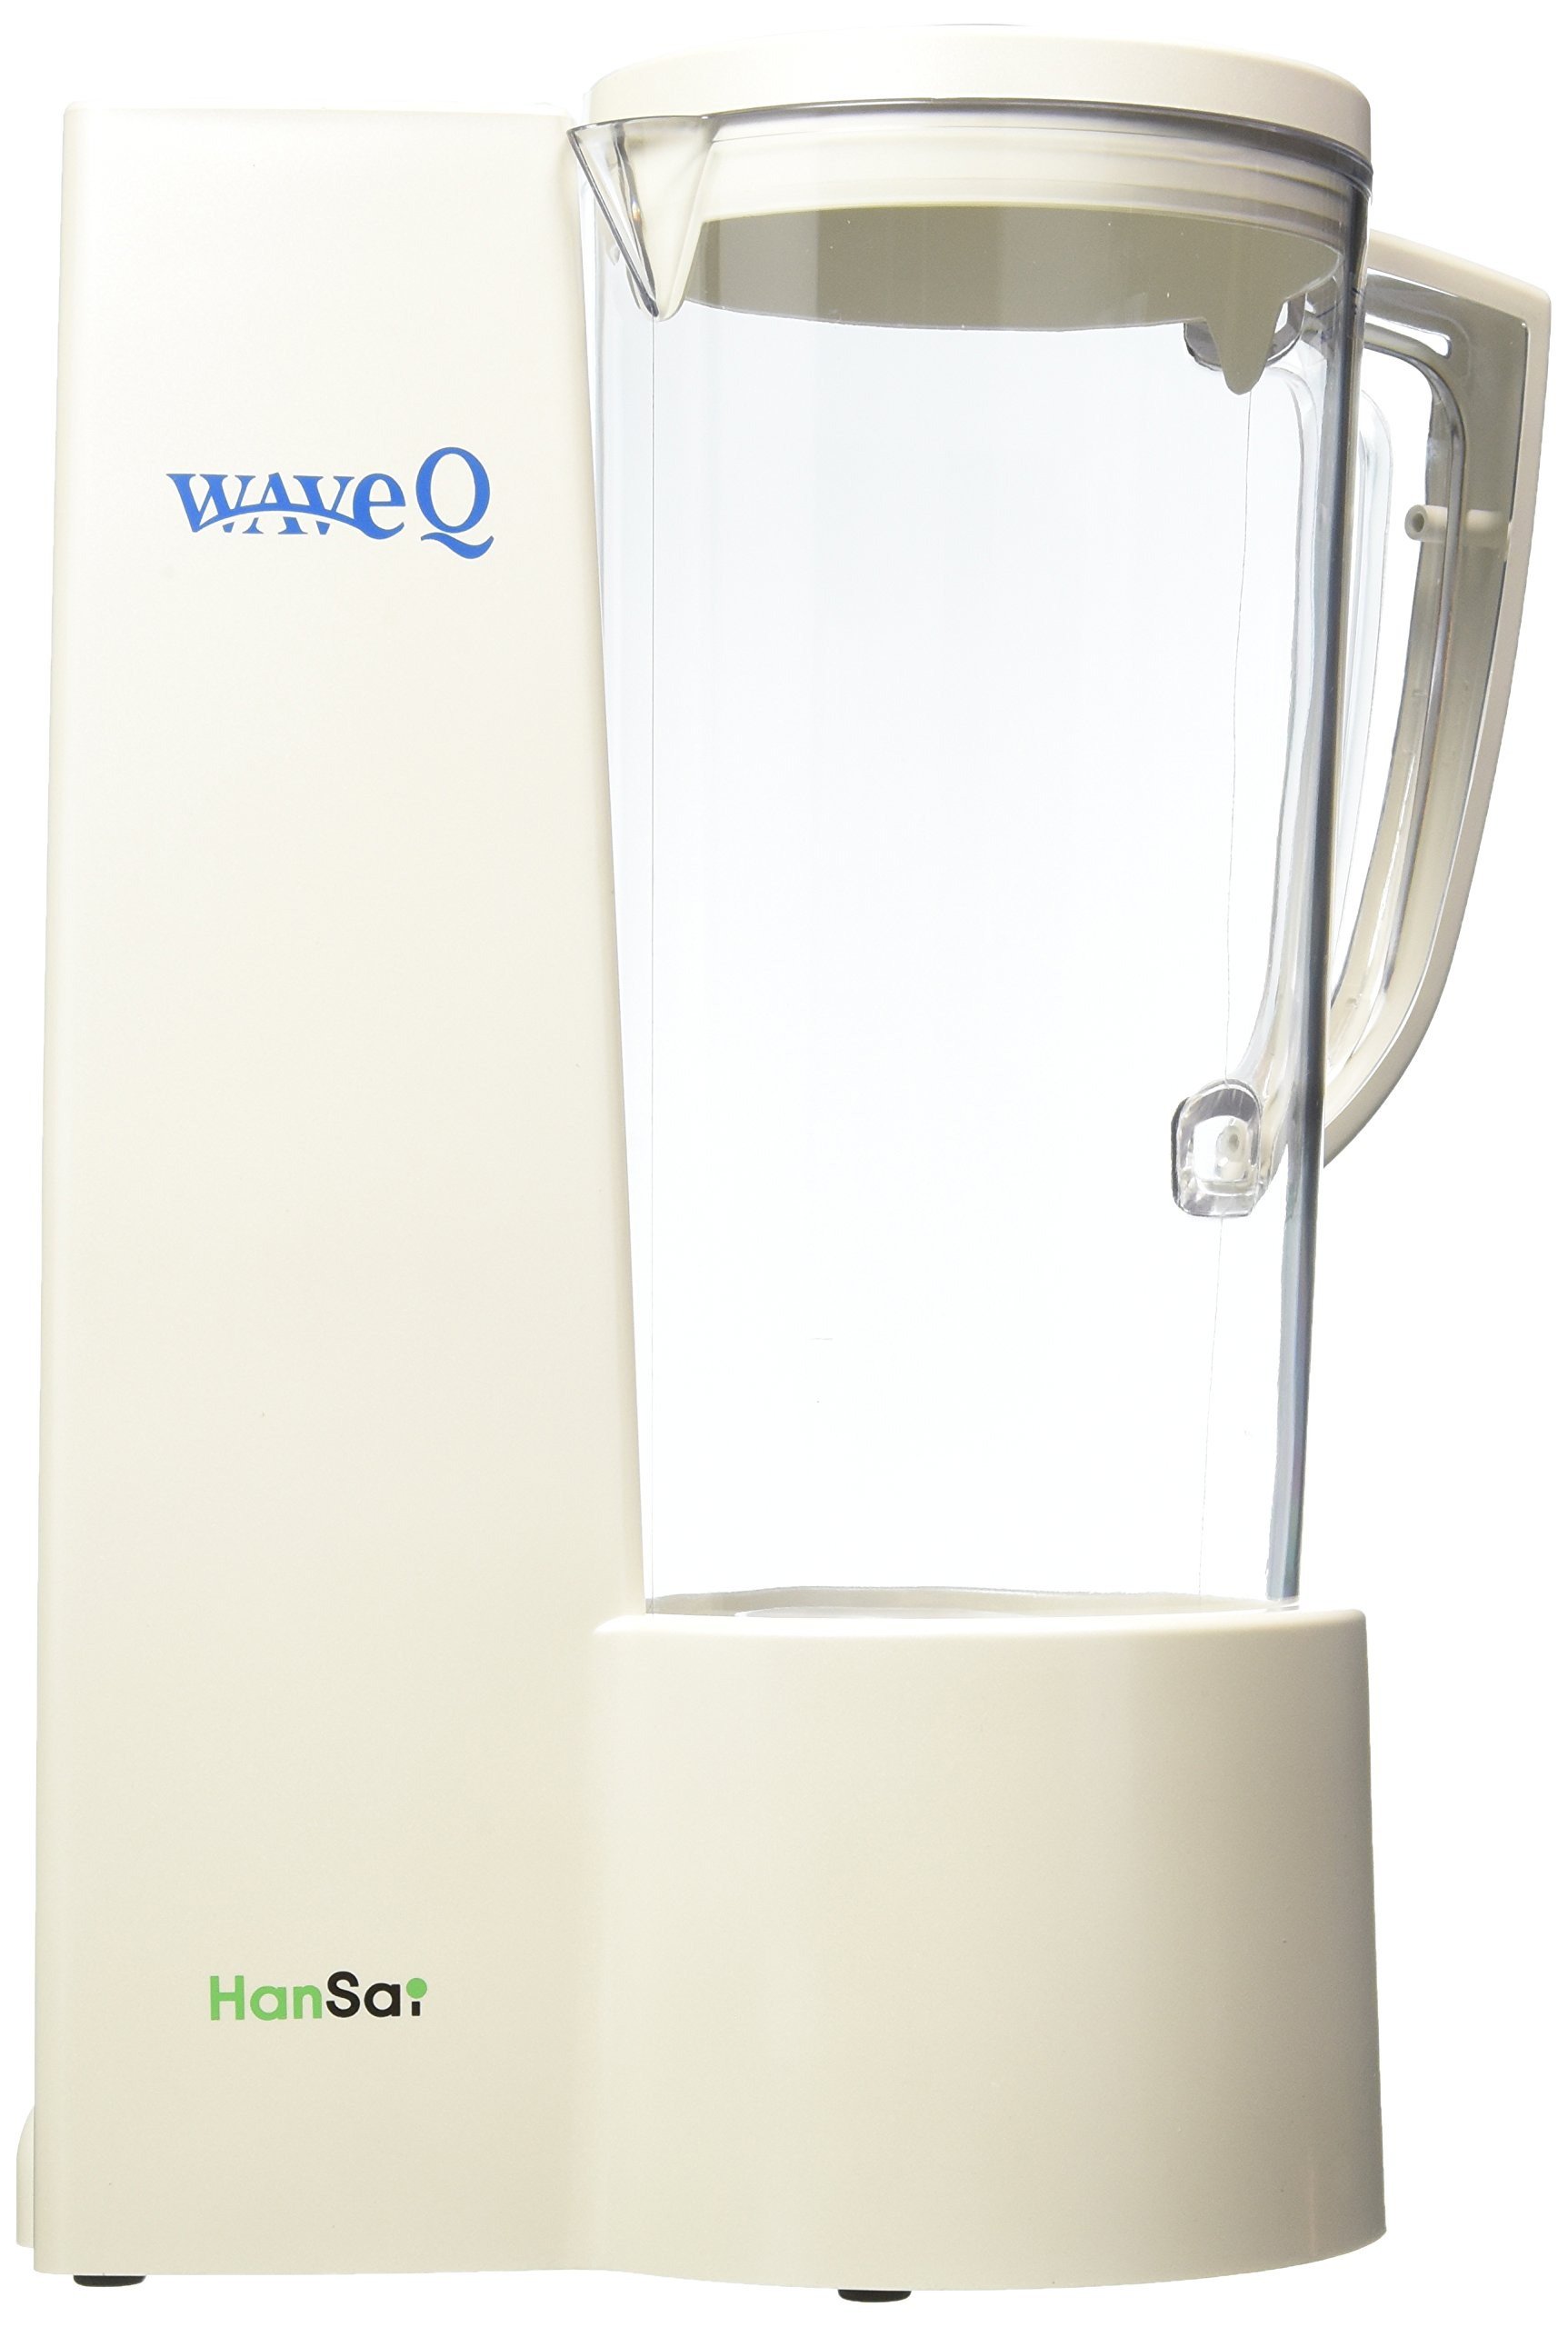 Wave Q- Mineralized Hexagonal Alkaline Water Generator to rapidly hydrate, replenish deprived cells, and eliminate free radicals.